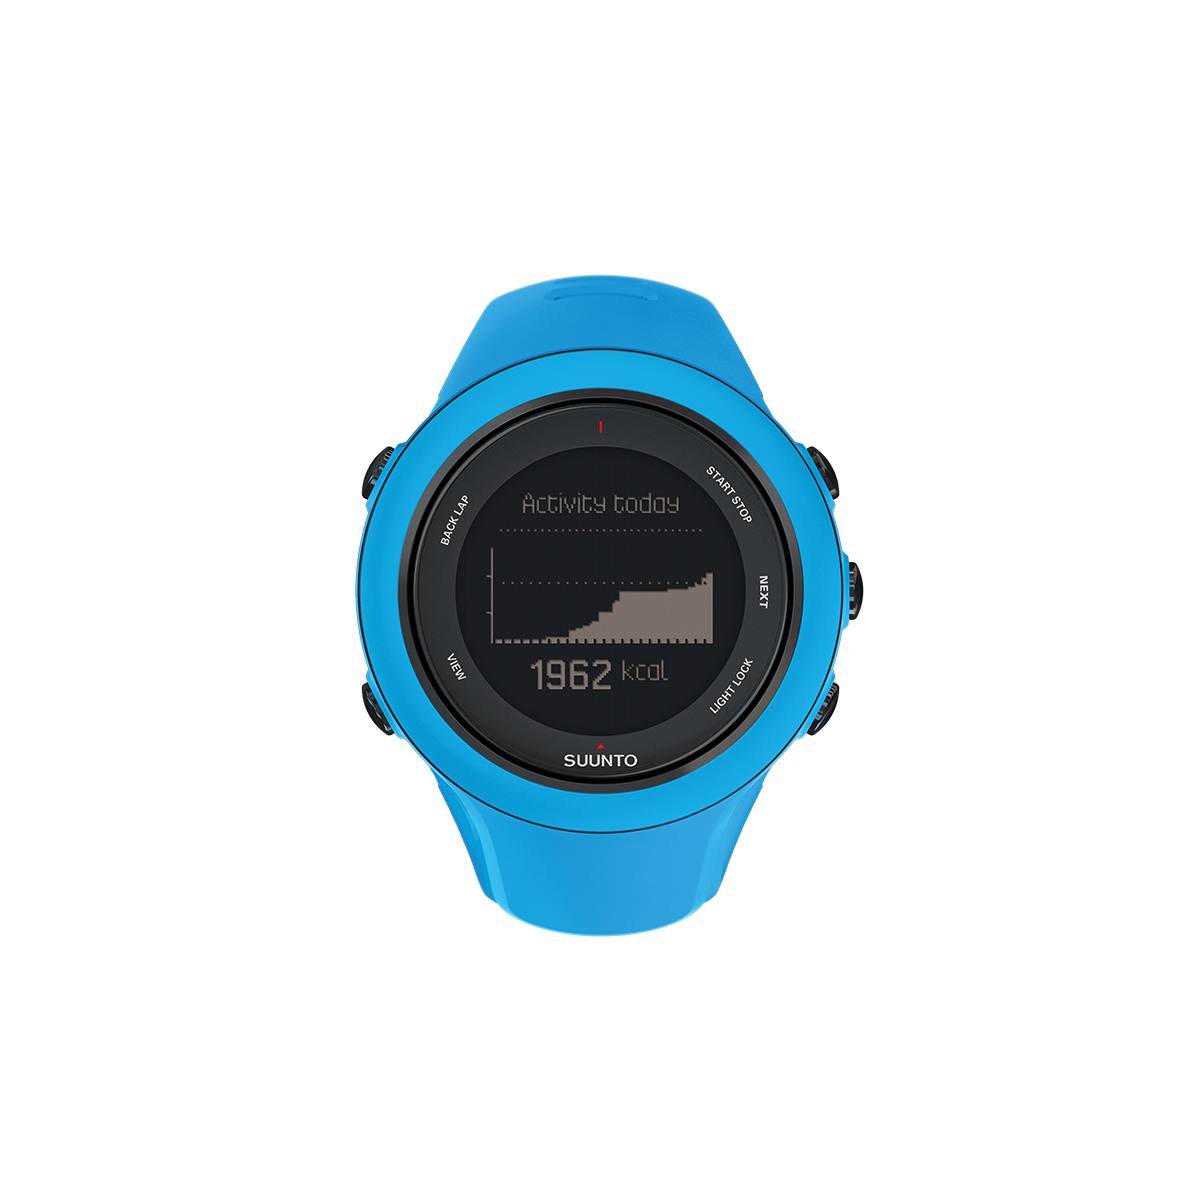 suunto montre gps suunto ambit3 blue sport montre de trail et running inuka. Black Bedroom Furniture Sets. Home Design Ideas